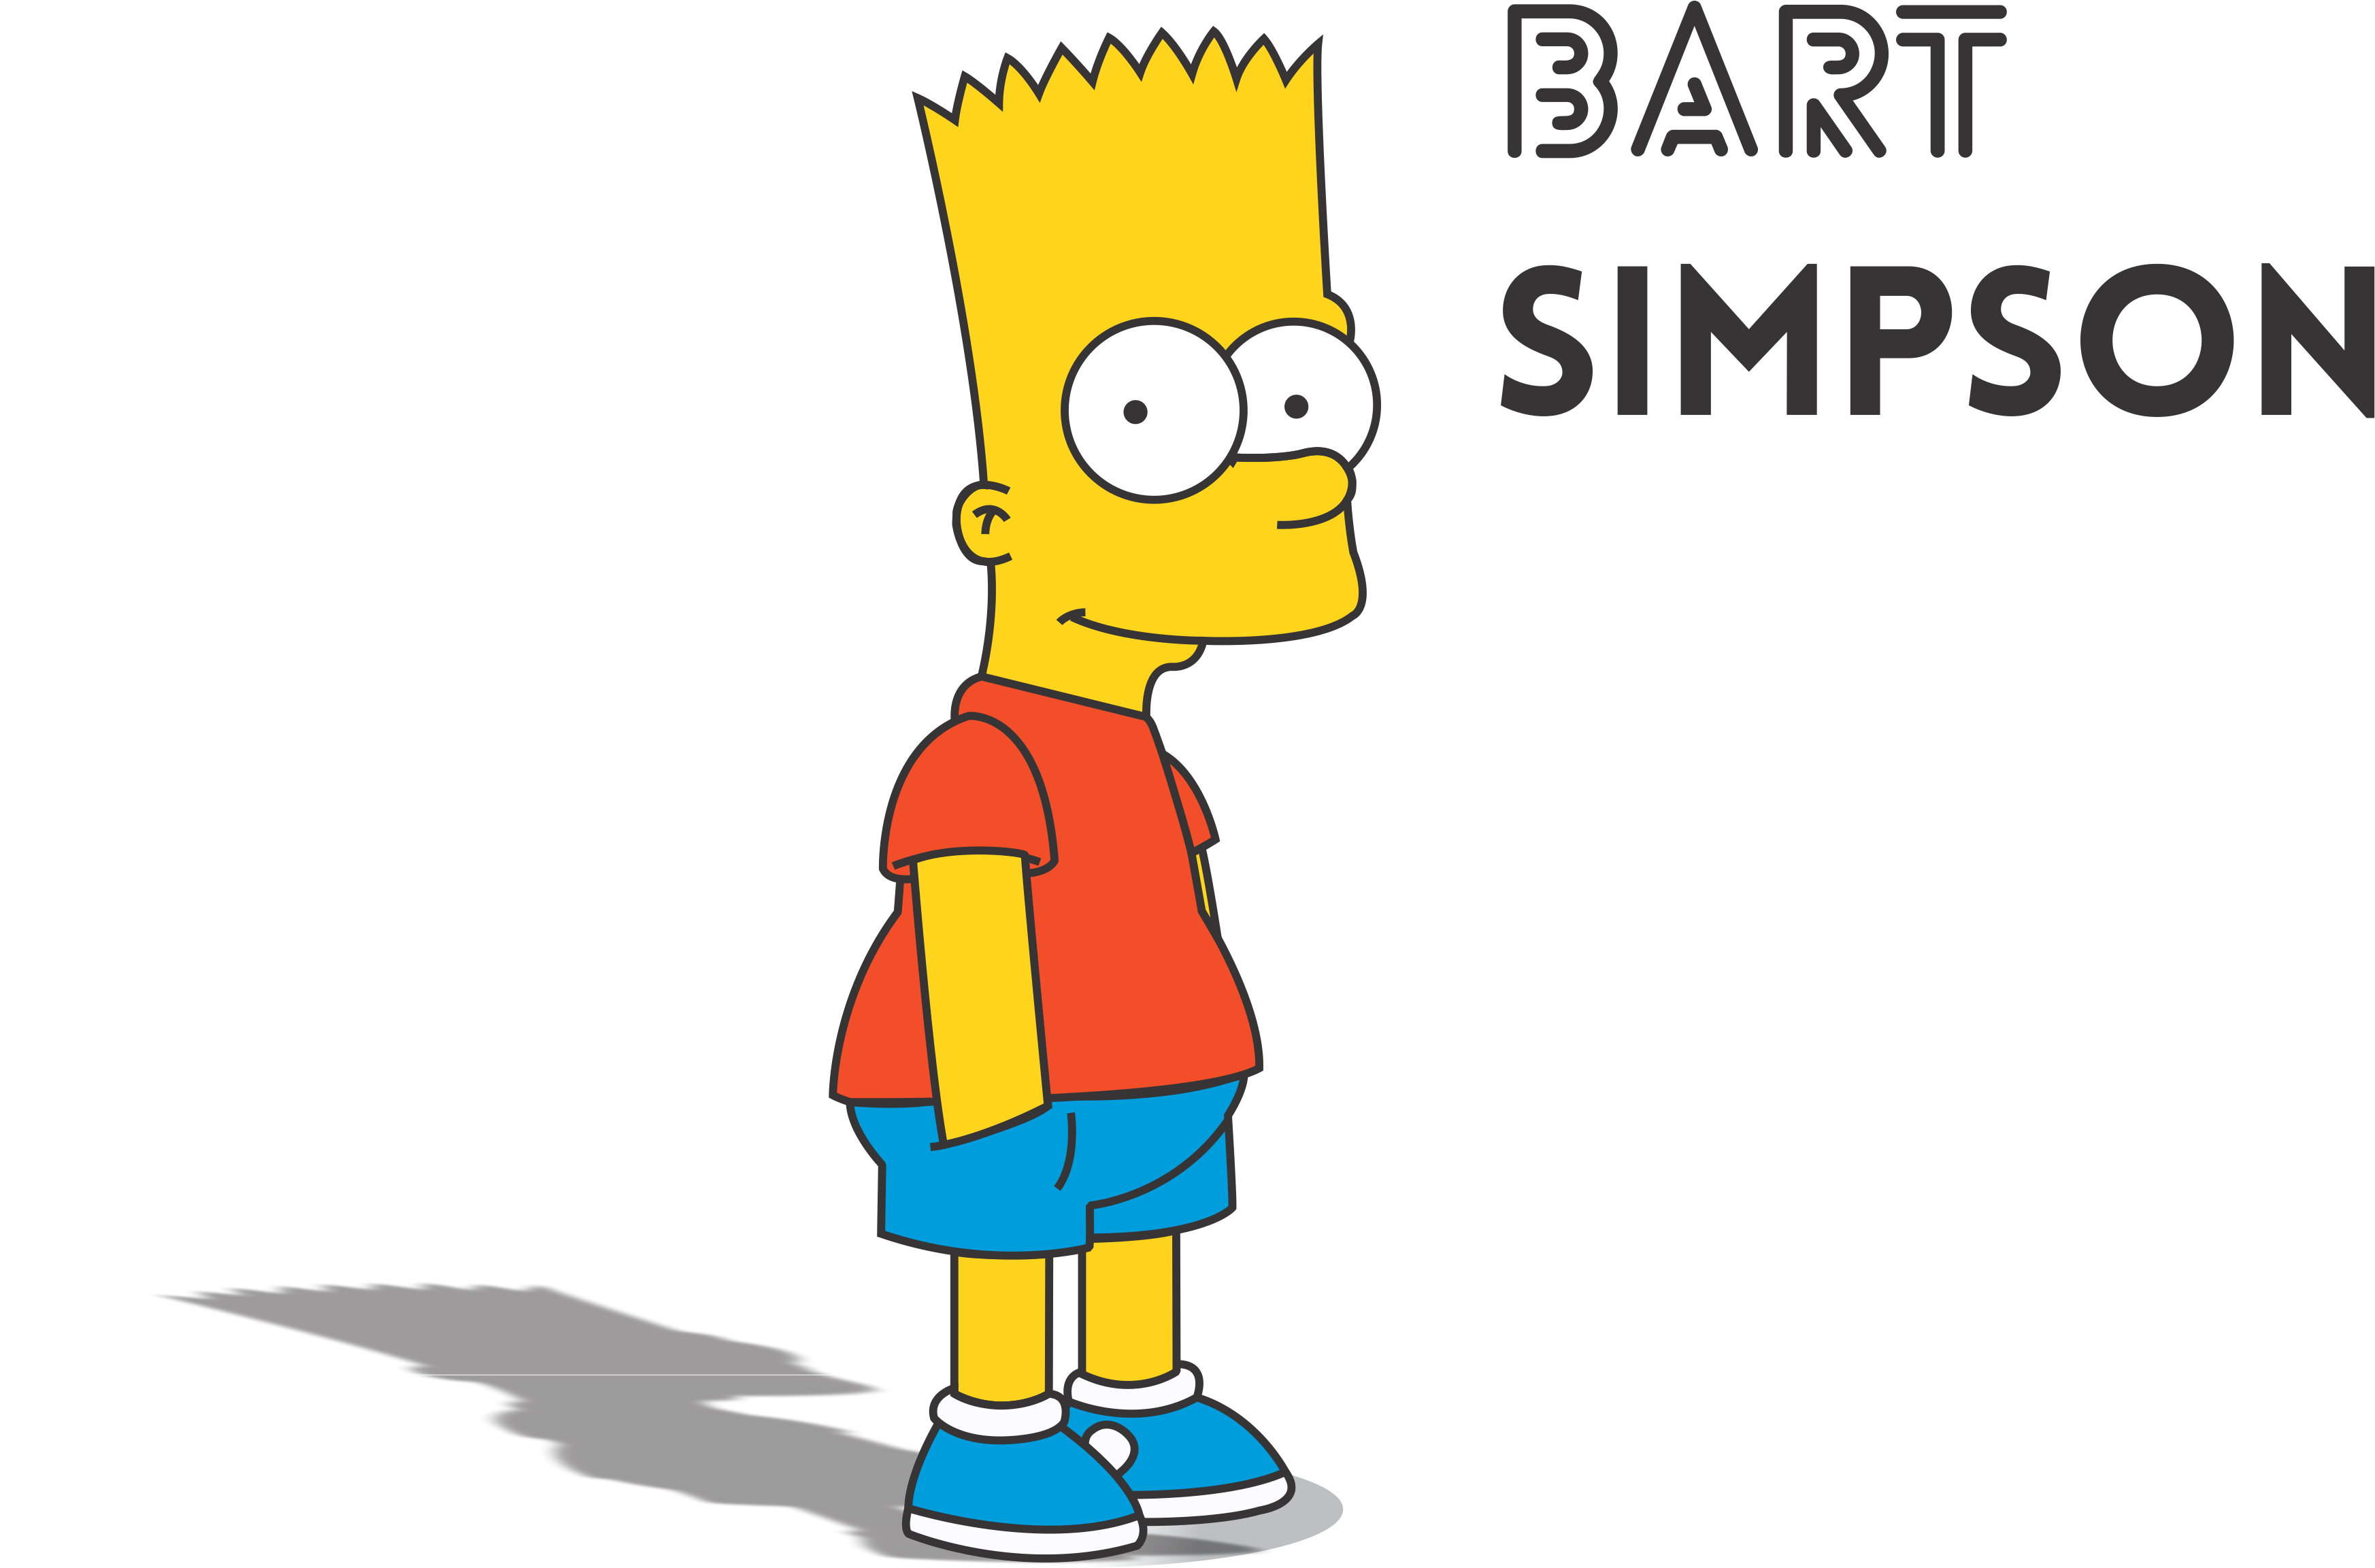 Bart Simpson by LukenStruken Bart Simpson by LukenStruken - Bart HD PNG